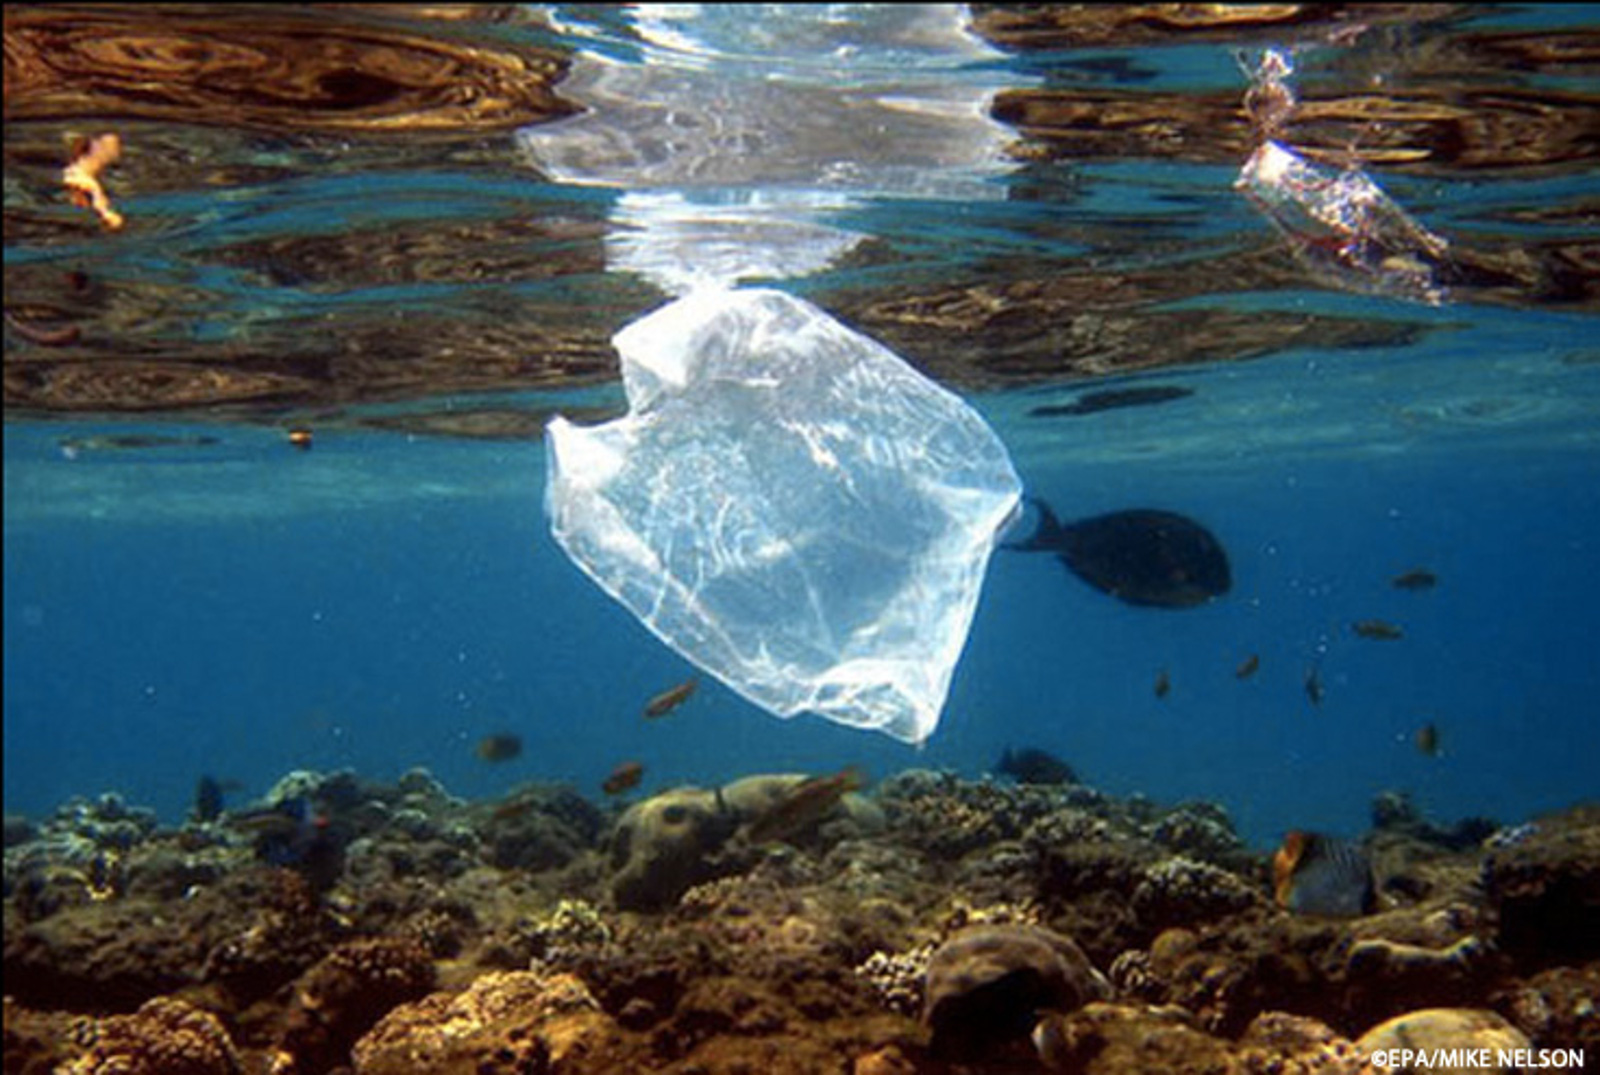 Nicholas Mallos: The Five Myths (and Truths) About Plastic Pollution in Our Ocean